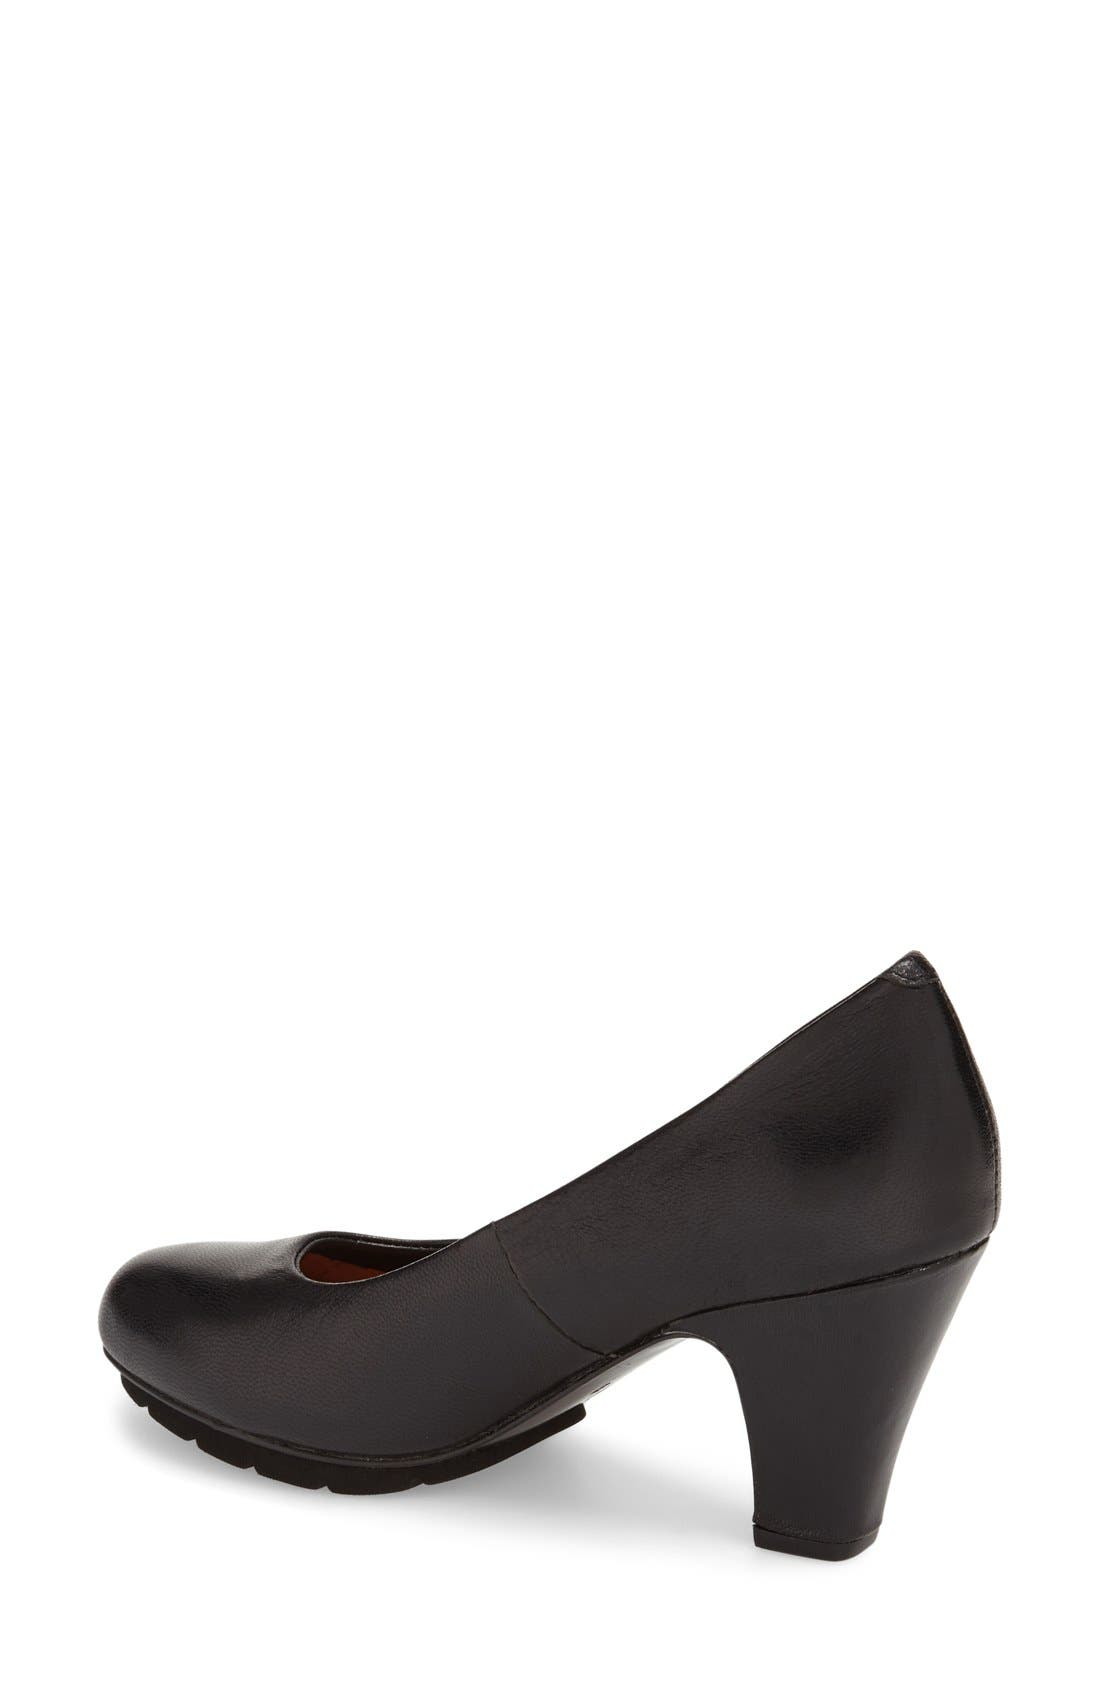 L'Amour des Pieds 'Fabienne' Round Toe Pump,                             Alternate thumbnail 2, color,                             001